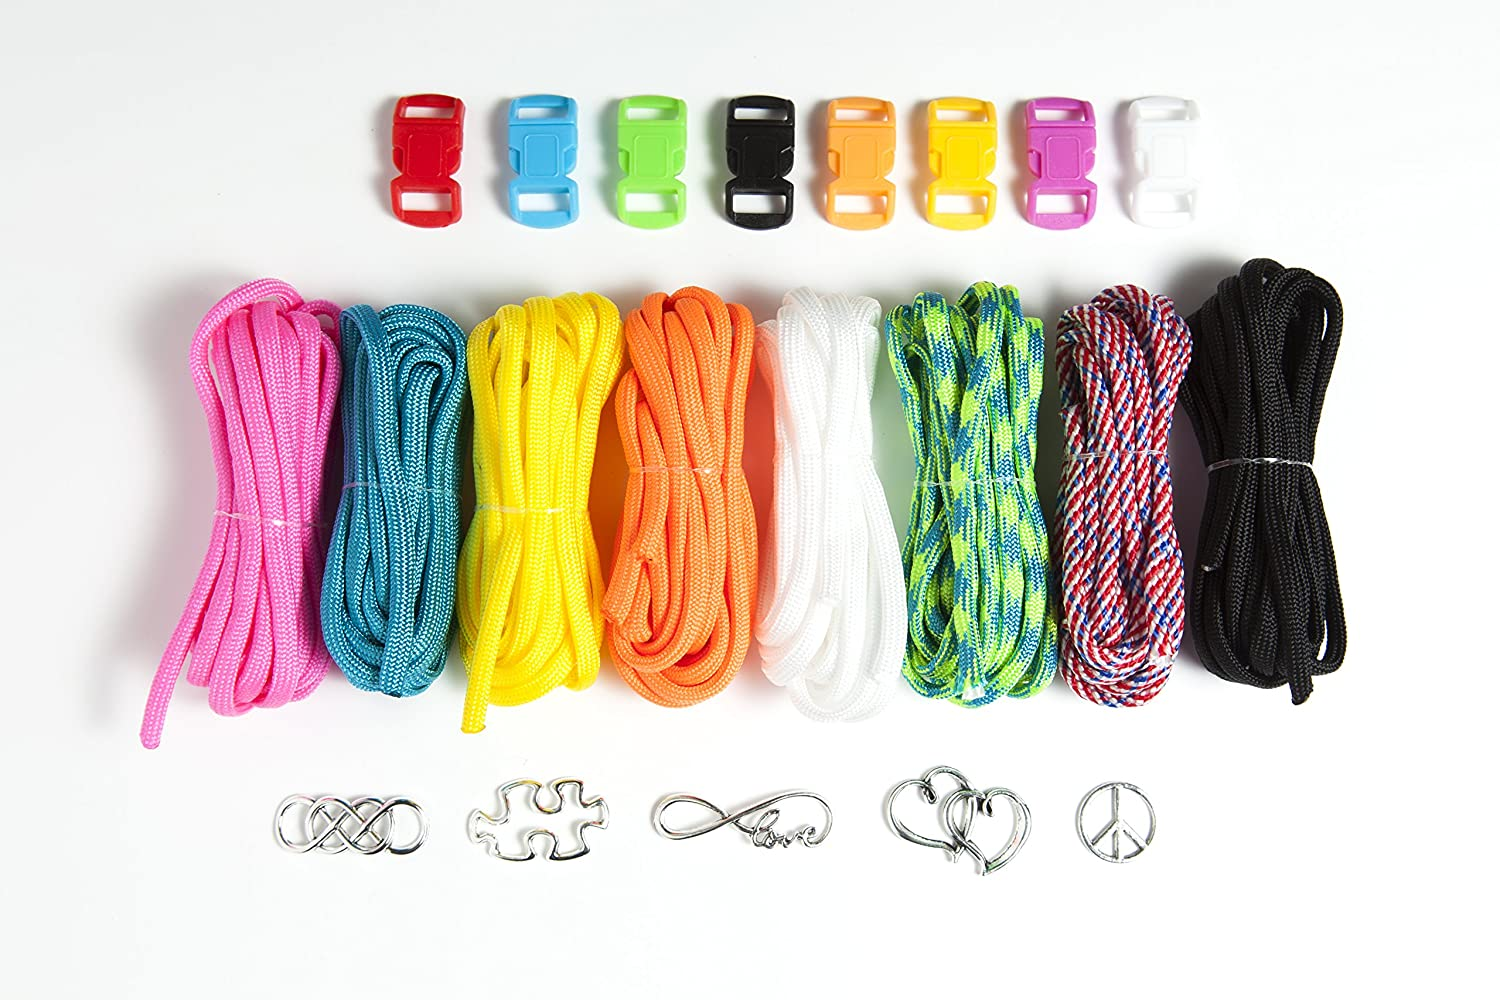 Camps /& Art Projects Parties Teens /& Children Paracord Charm Bracelet Making Set: Pinwheel Crafts DIY Bracelets Kit for Girls Make Your Own Personalized Friendship /& Fashion Jewelry for Birthdays